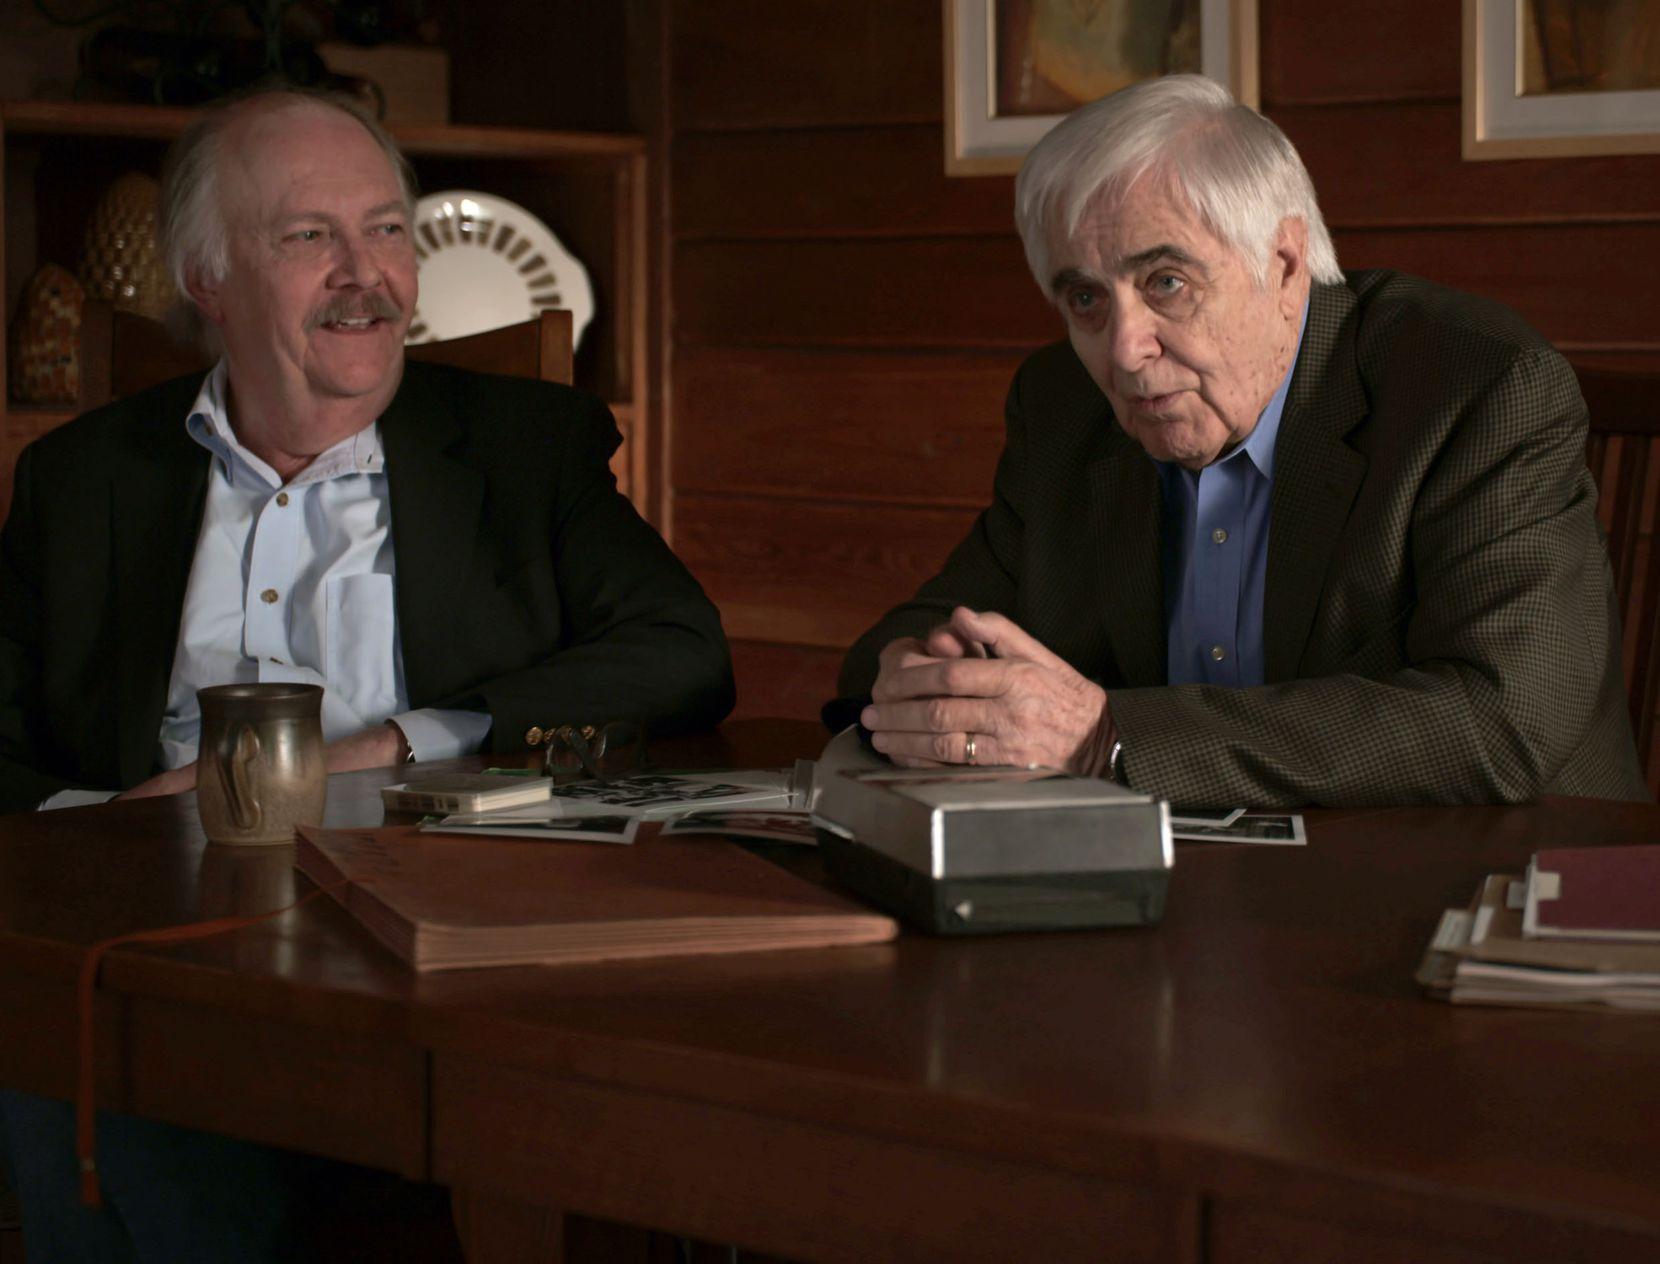 Stephen Michaud (left) and Hugh Aynesworth in a photo from Conversations with a Killer: The Ted Bundy Tapes